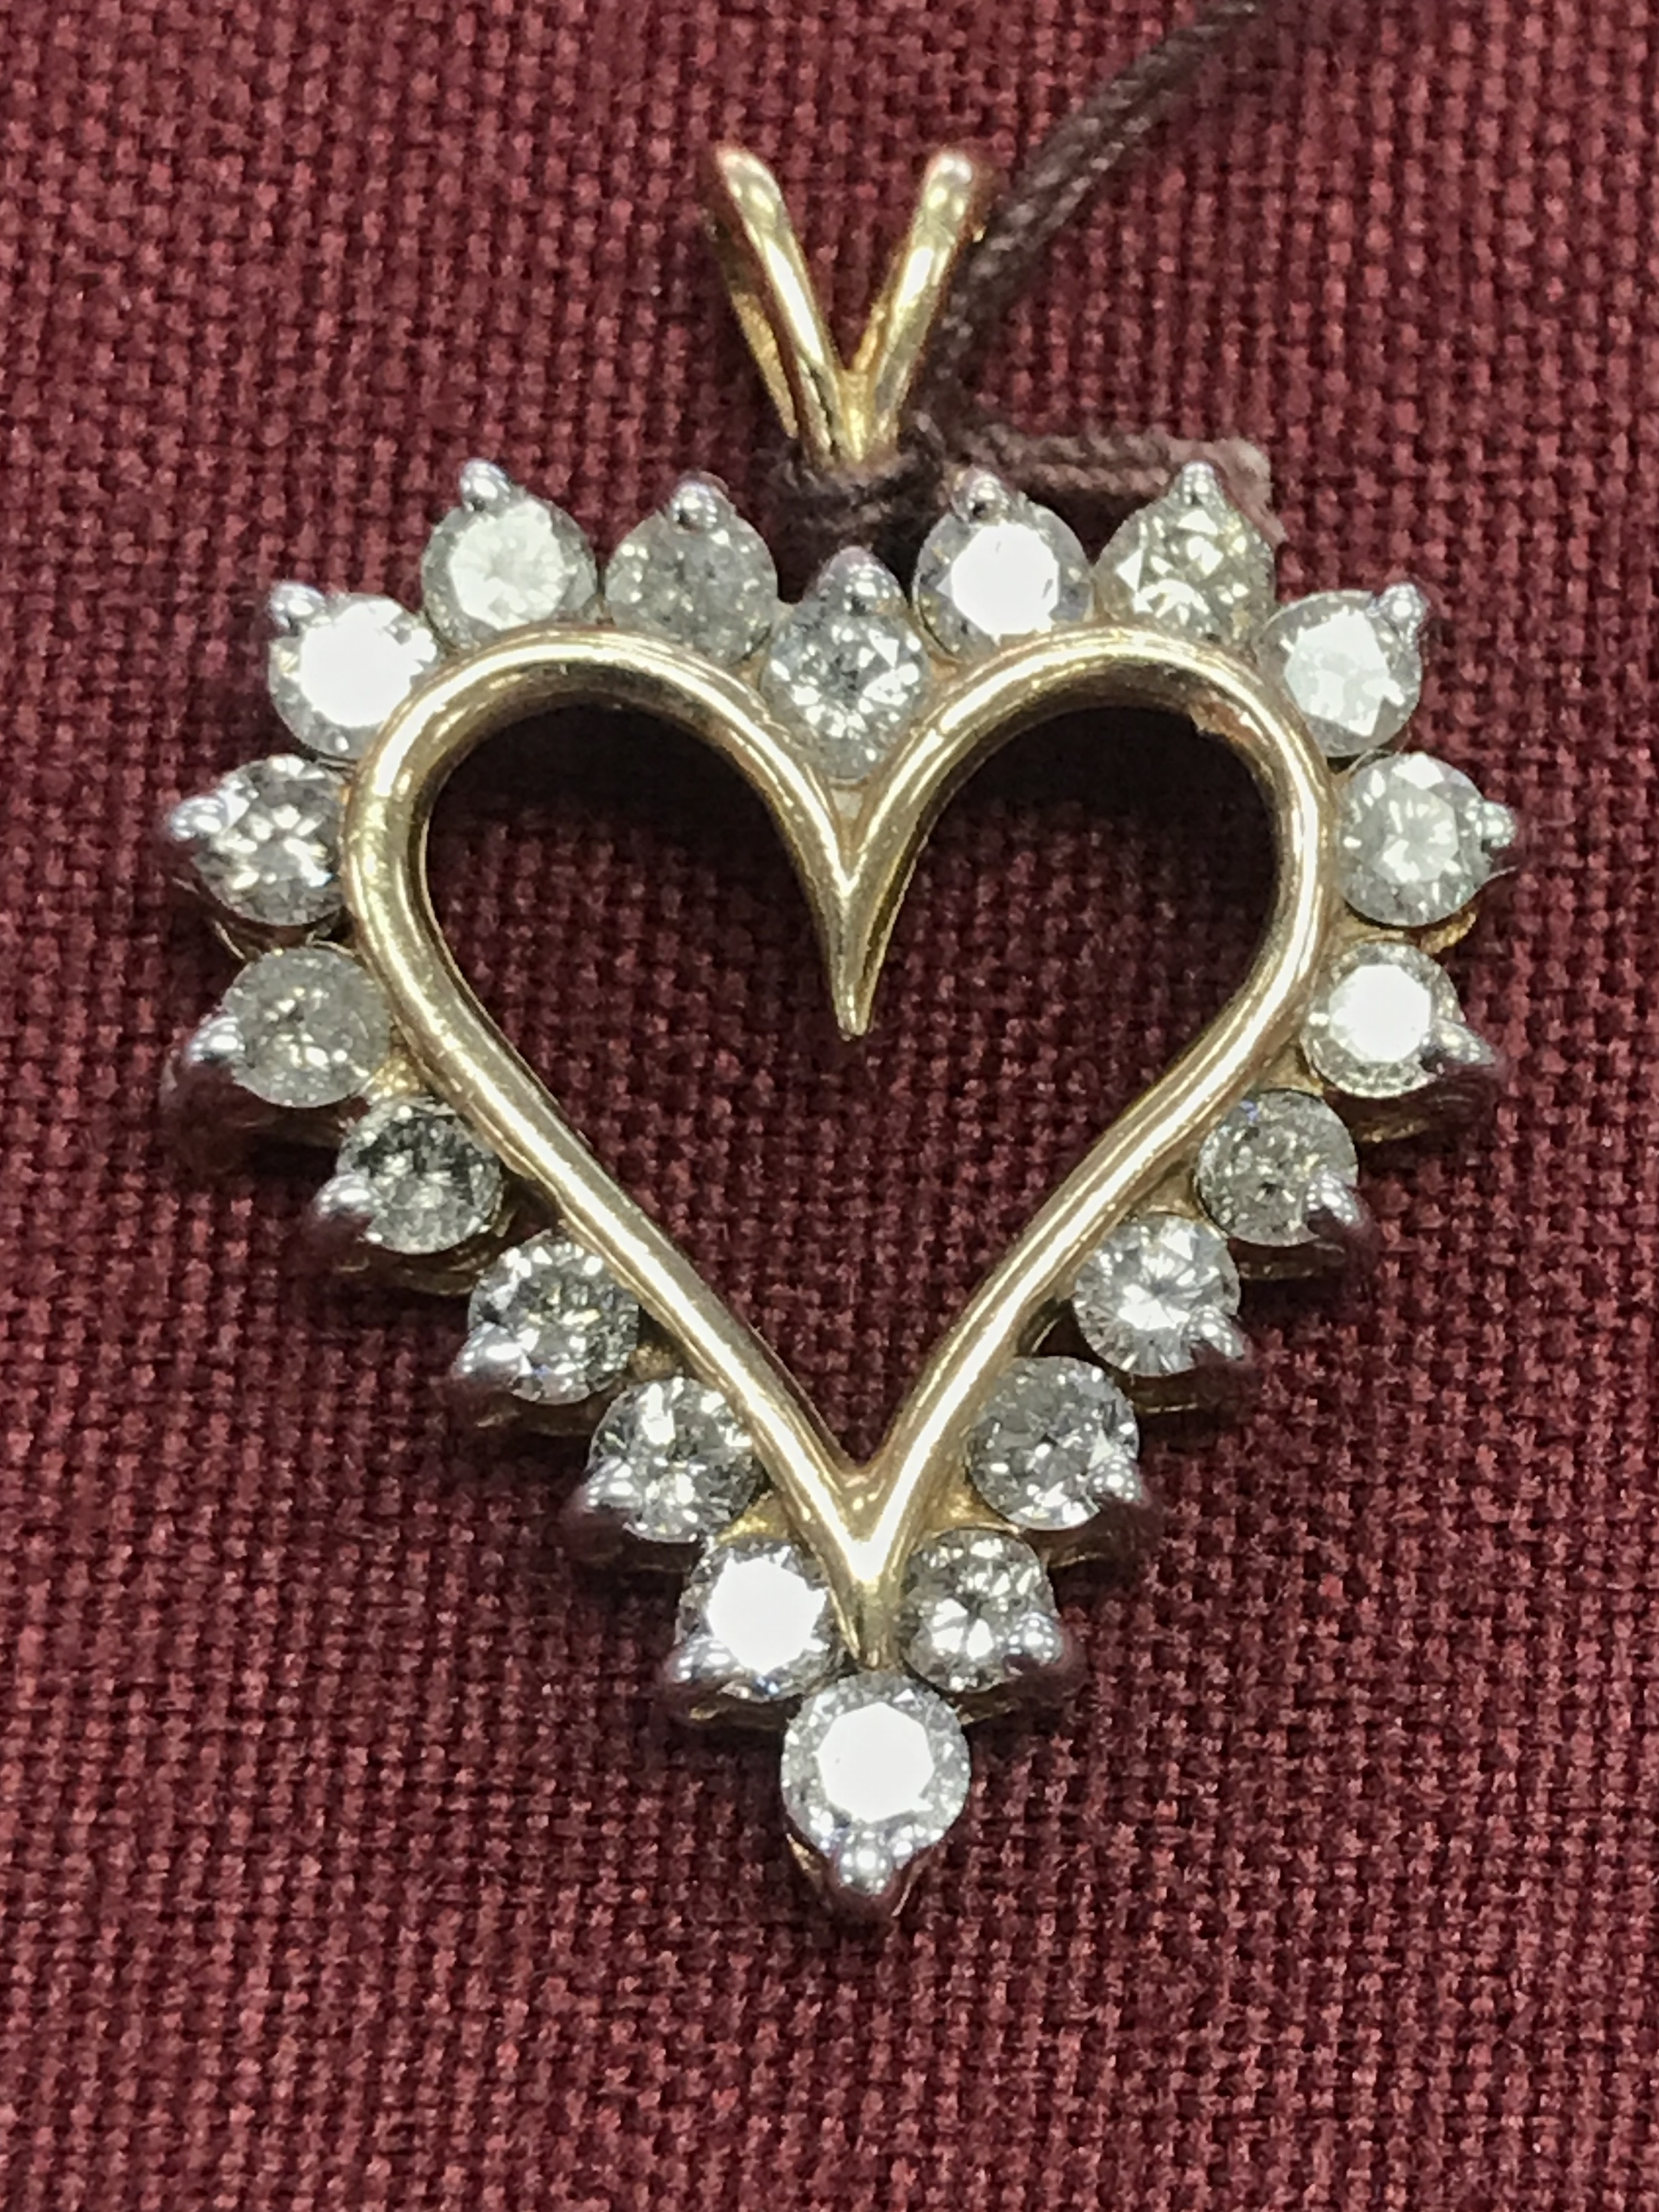 10KT YG HEART CHARM LINED IN SMALL DIAMONDS